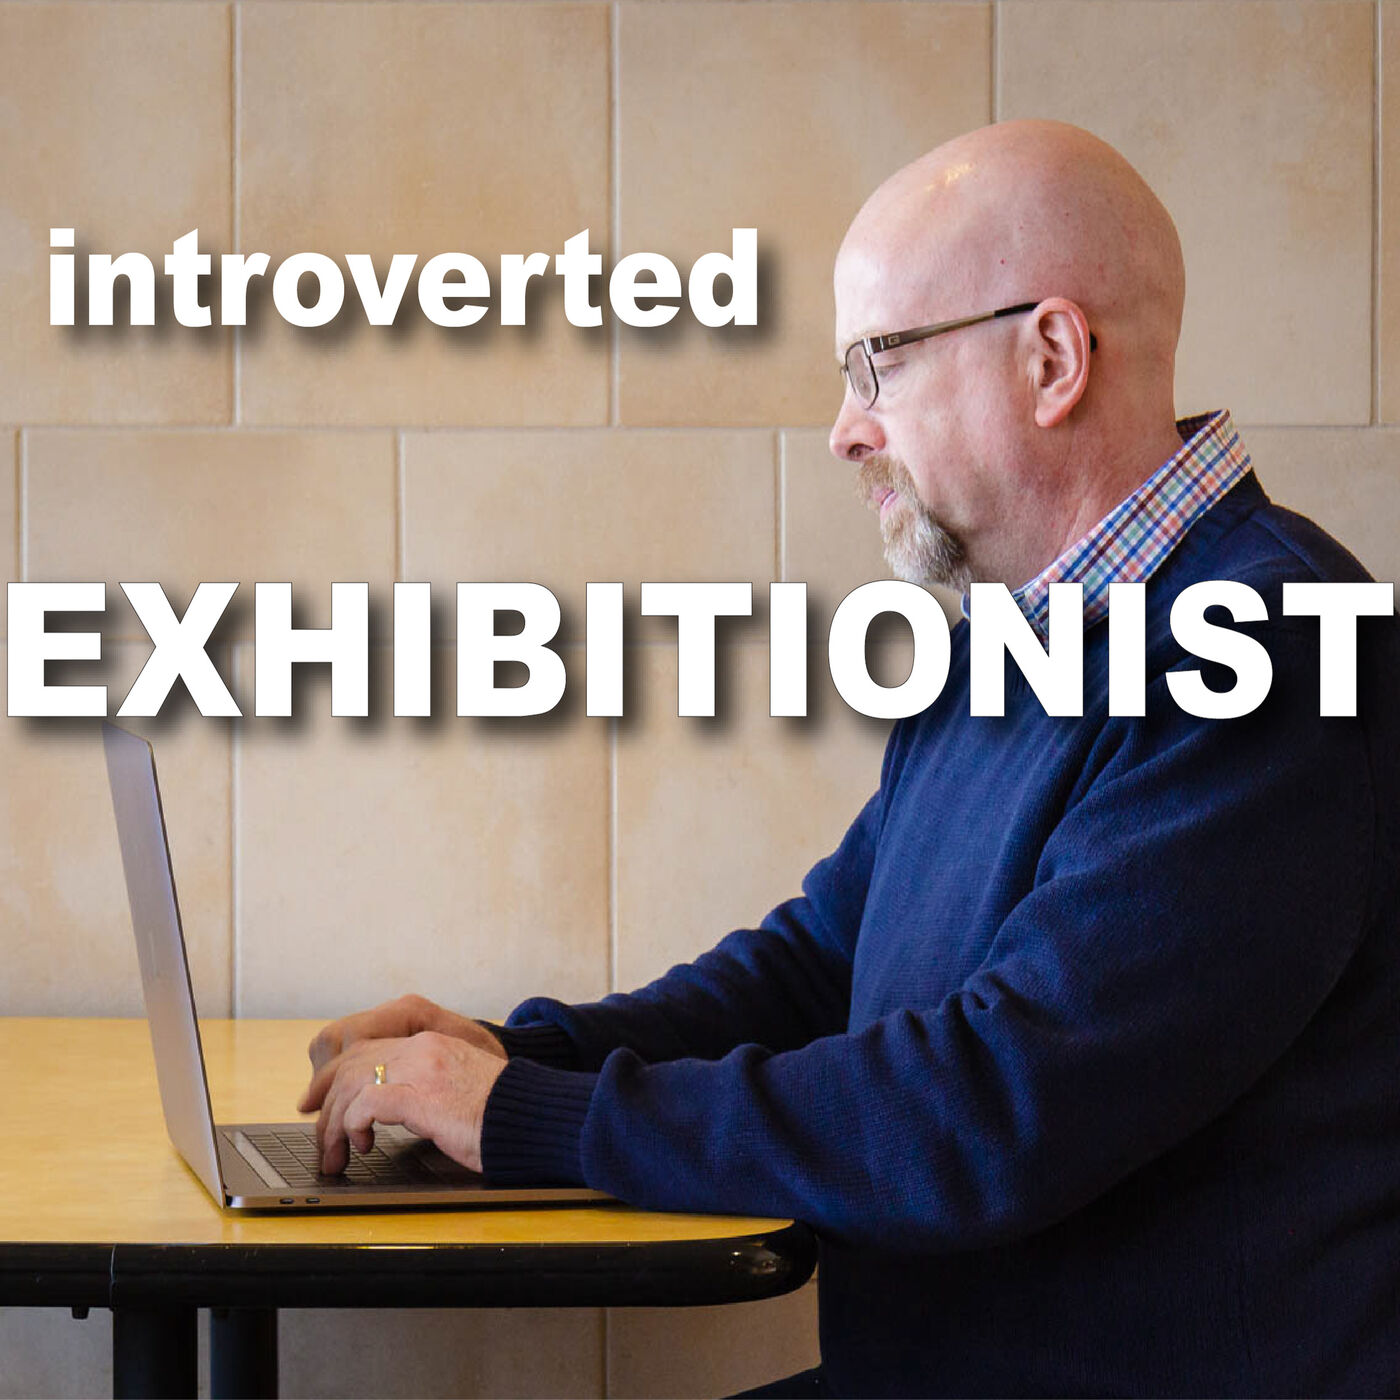 Introverted Exhibitionist